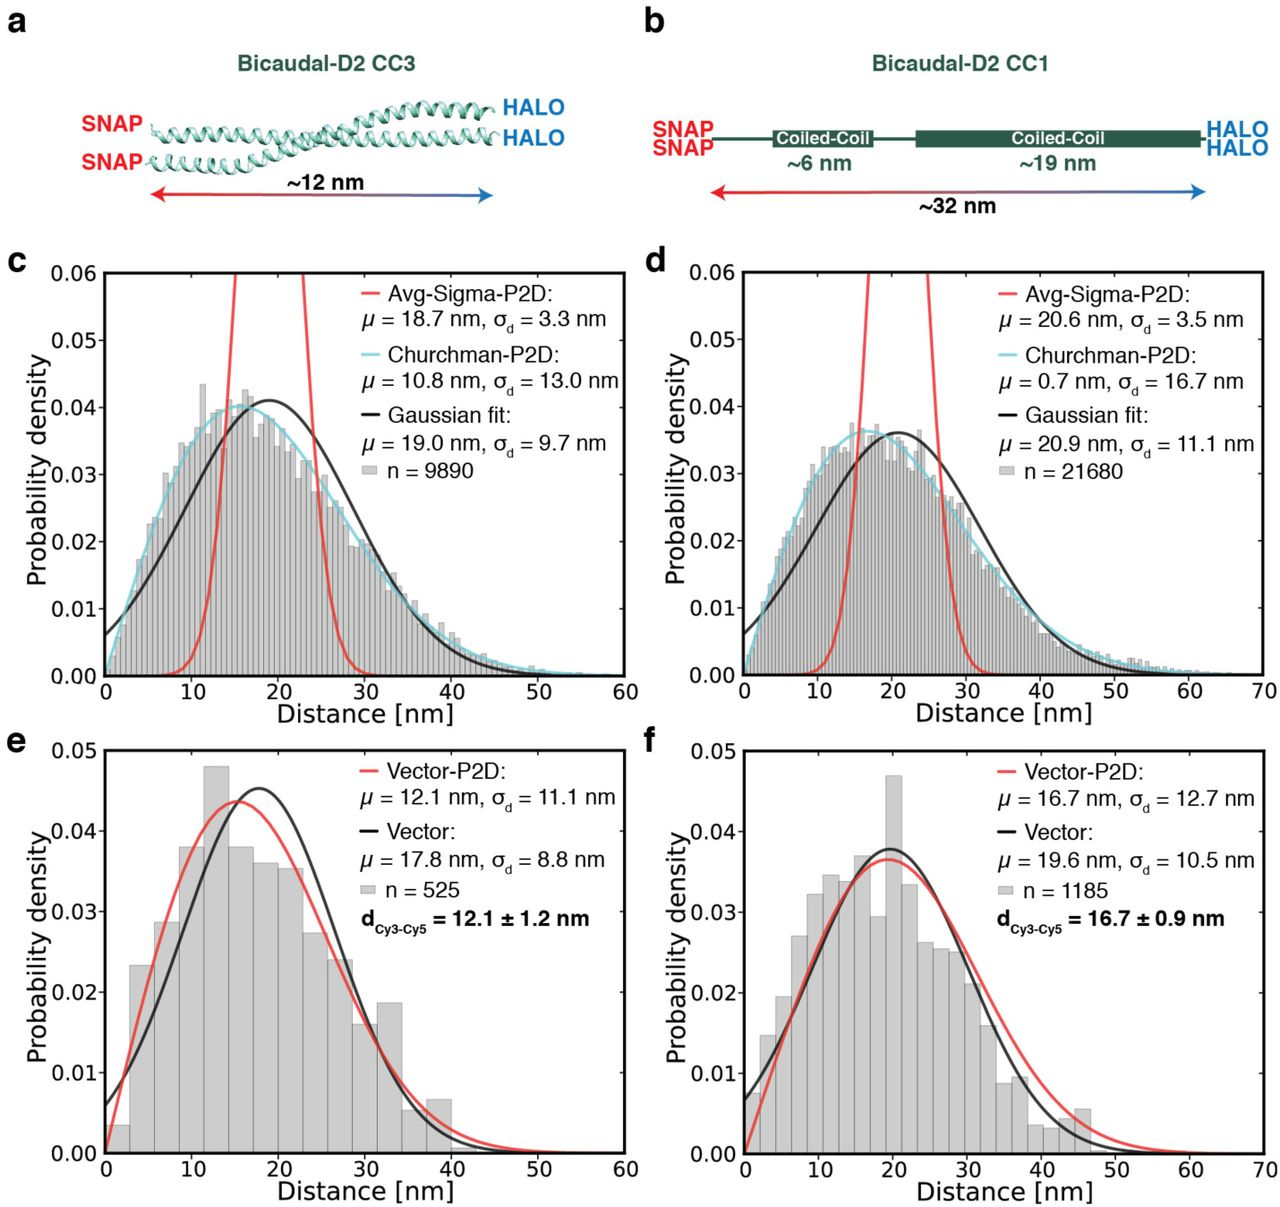 High accuracy measurements of nanometer-scale distances between